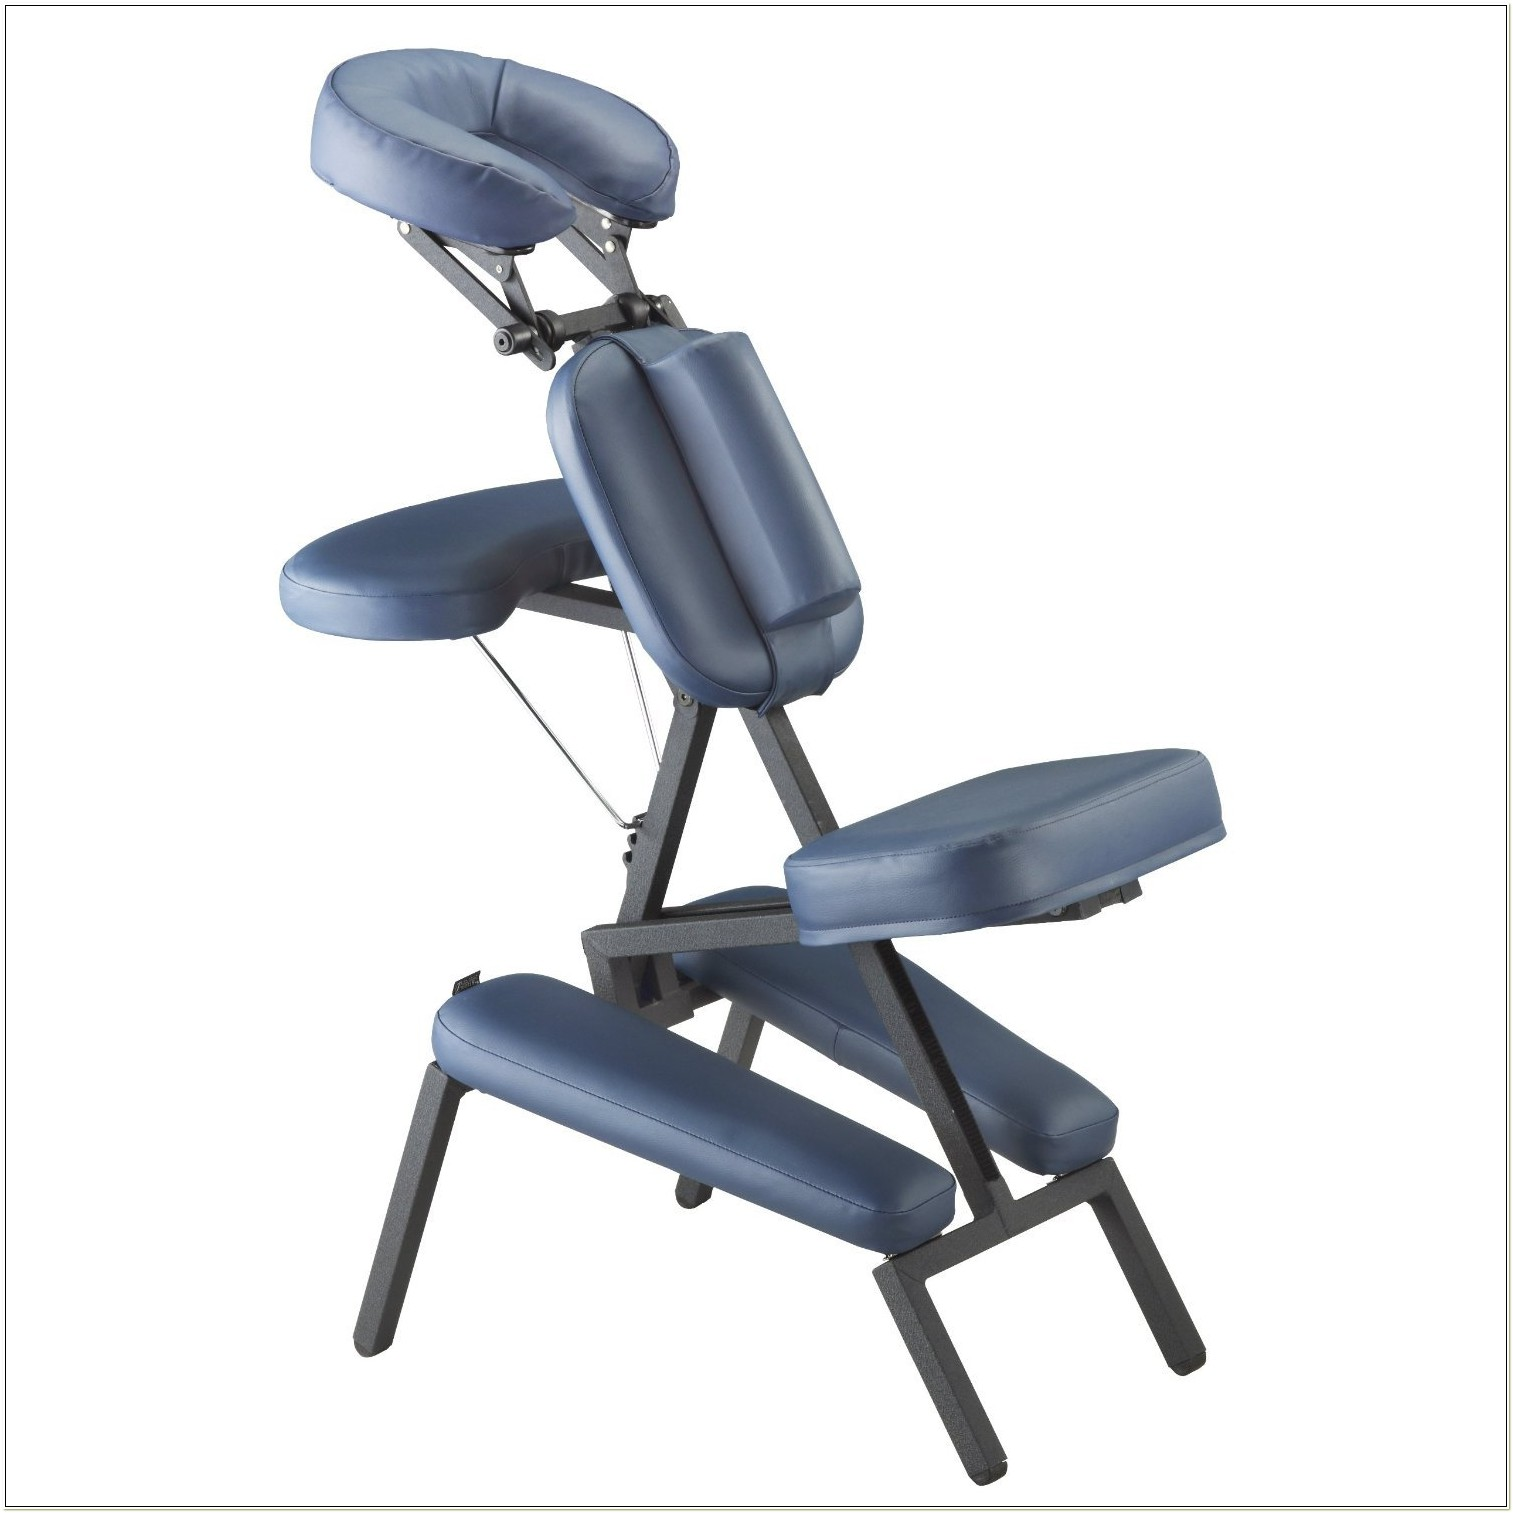 Cheapest Portable Massage Chair